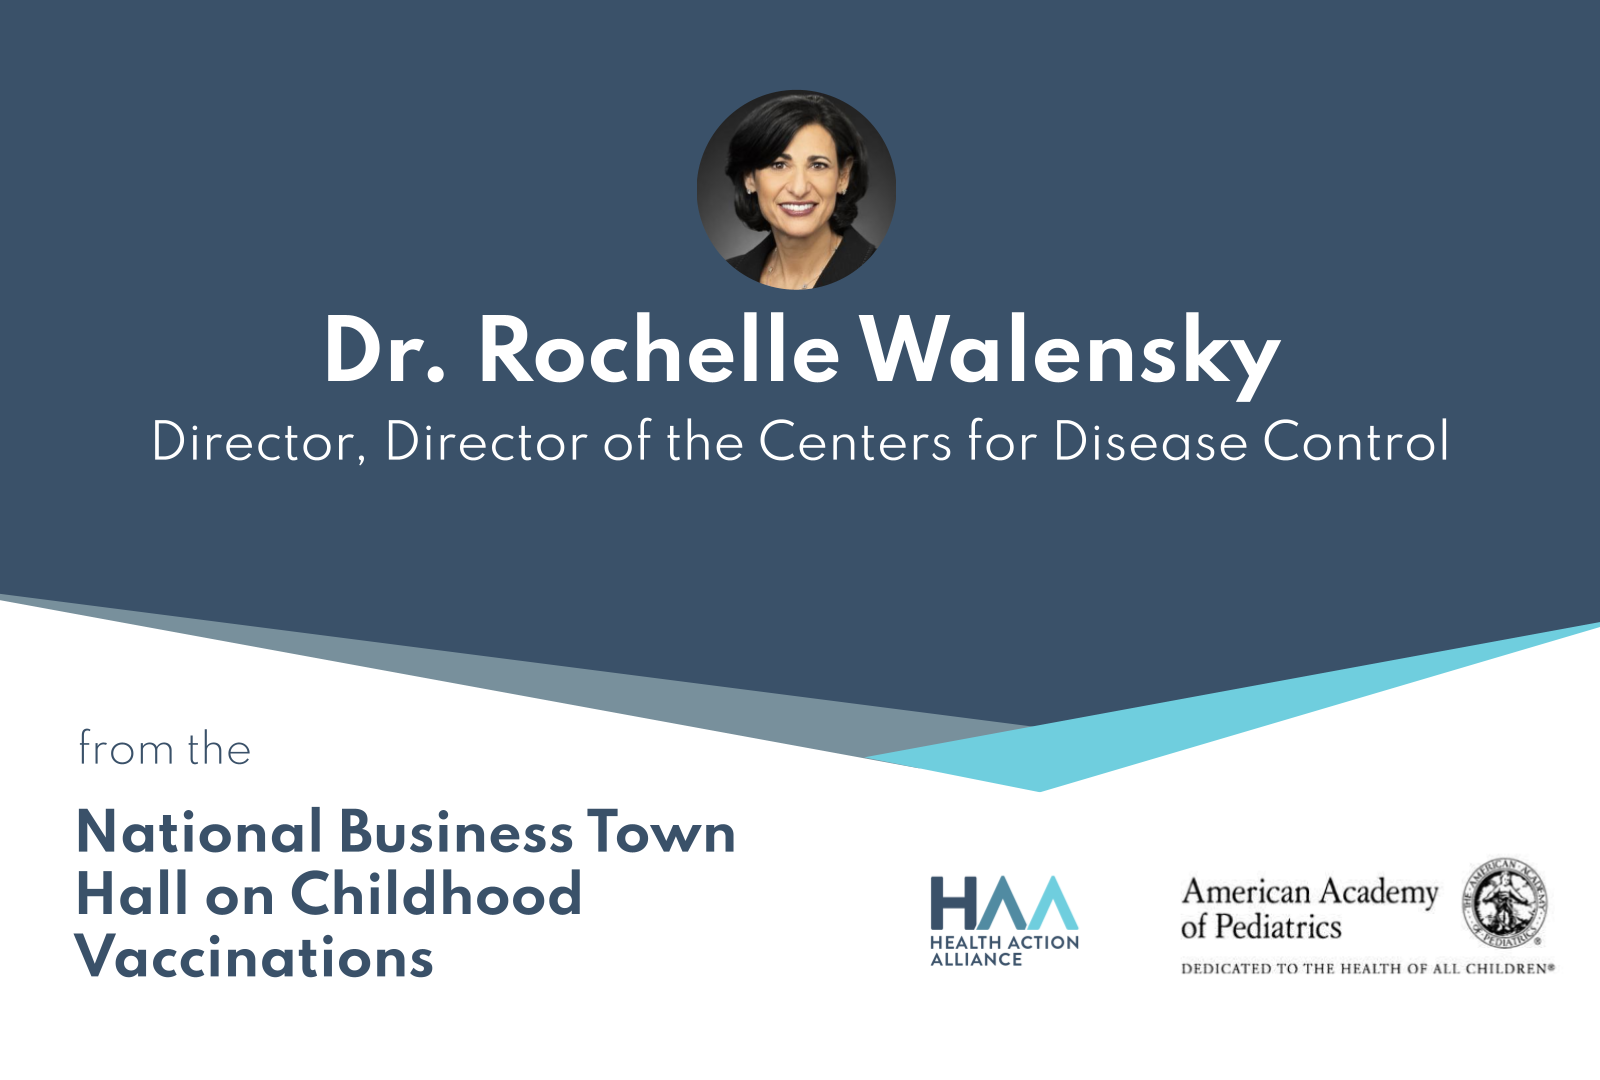 National Business Town Hall on Childhood Vaccinations